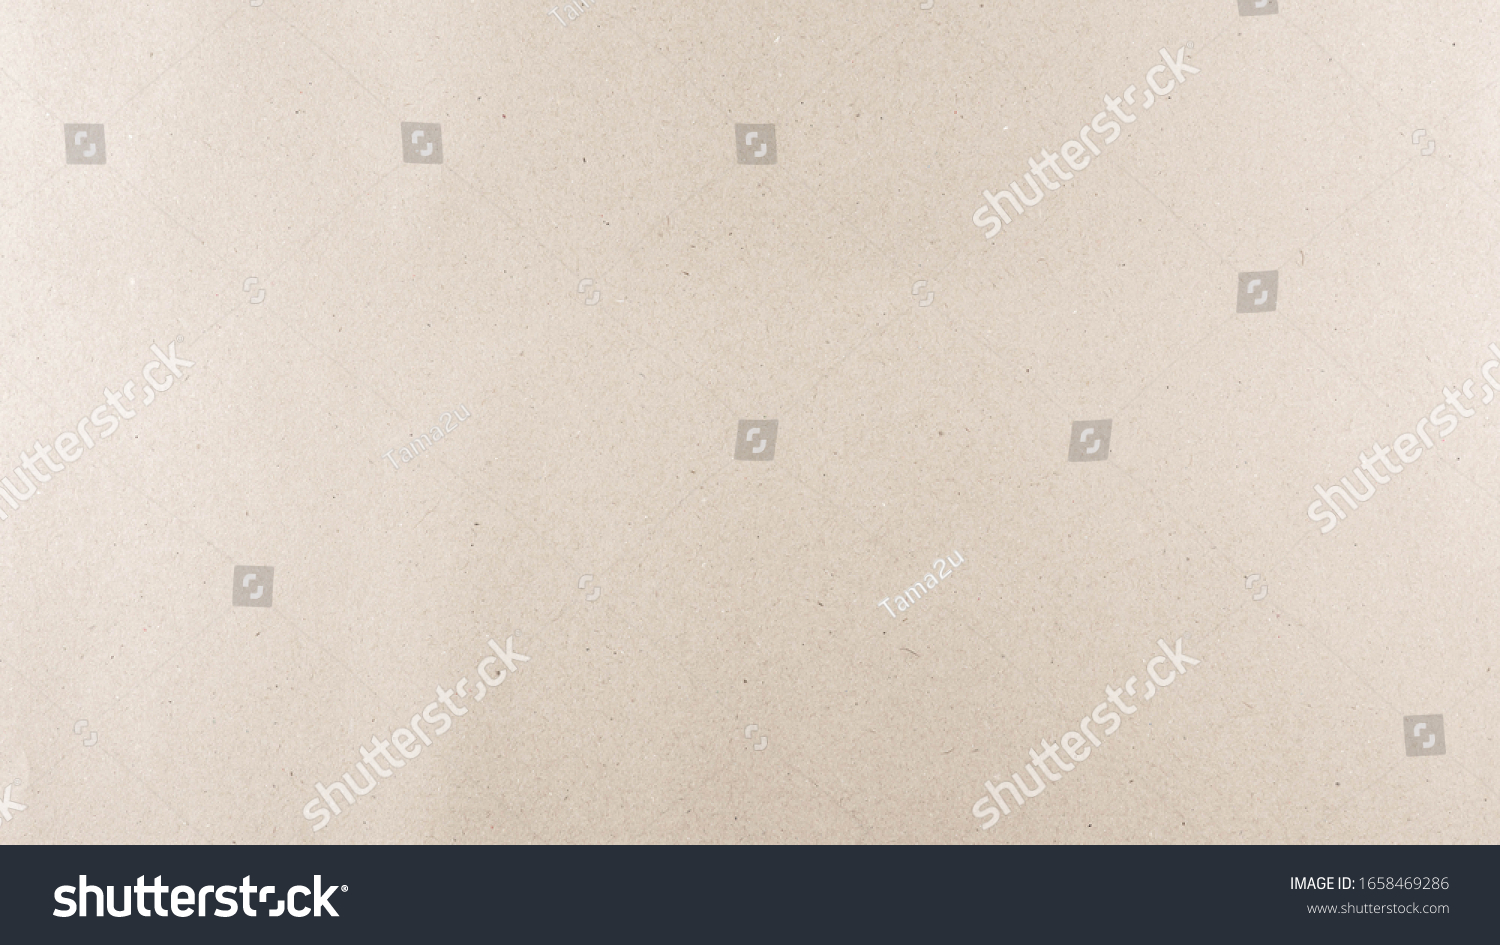 Abstract brown recycled paper texture background. Old Kraft paper box craft pattern. top view. #1658469286